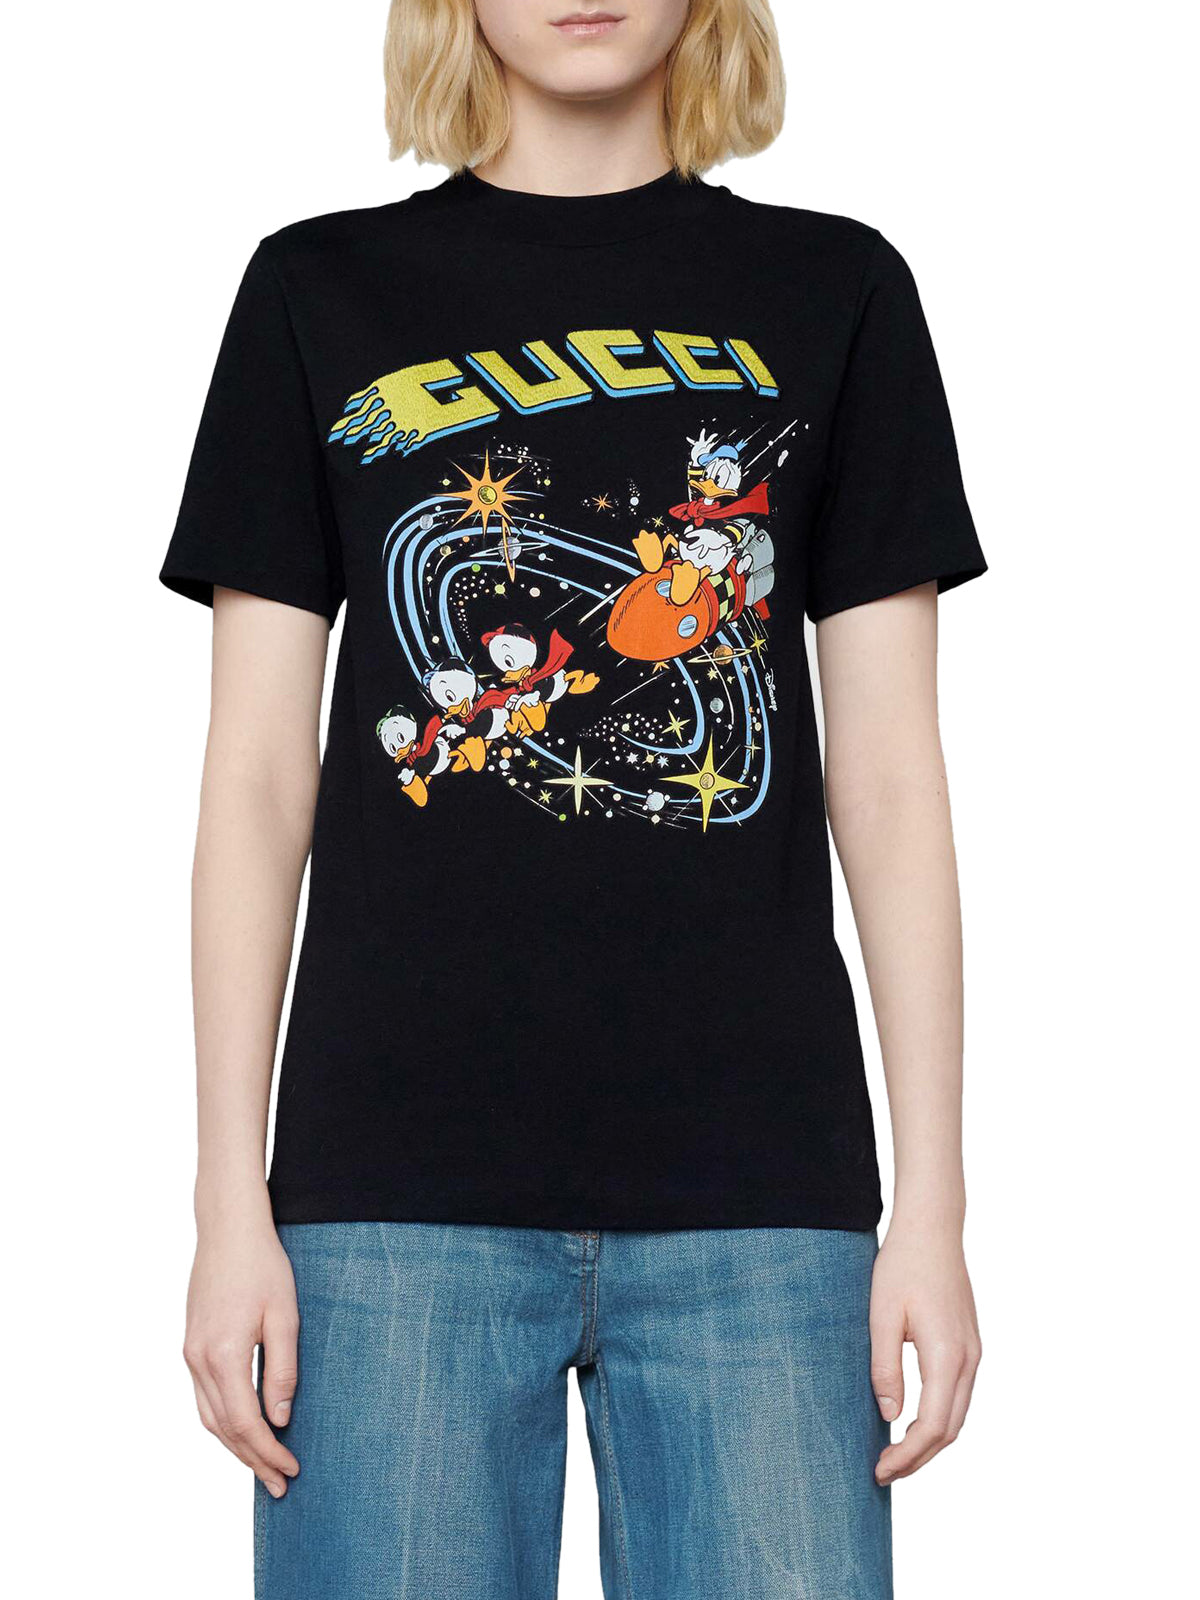 T-shirt Donald Duck Disney x Gucci